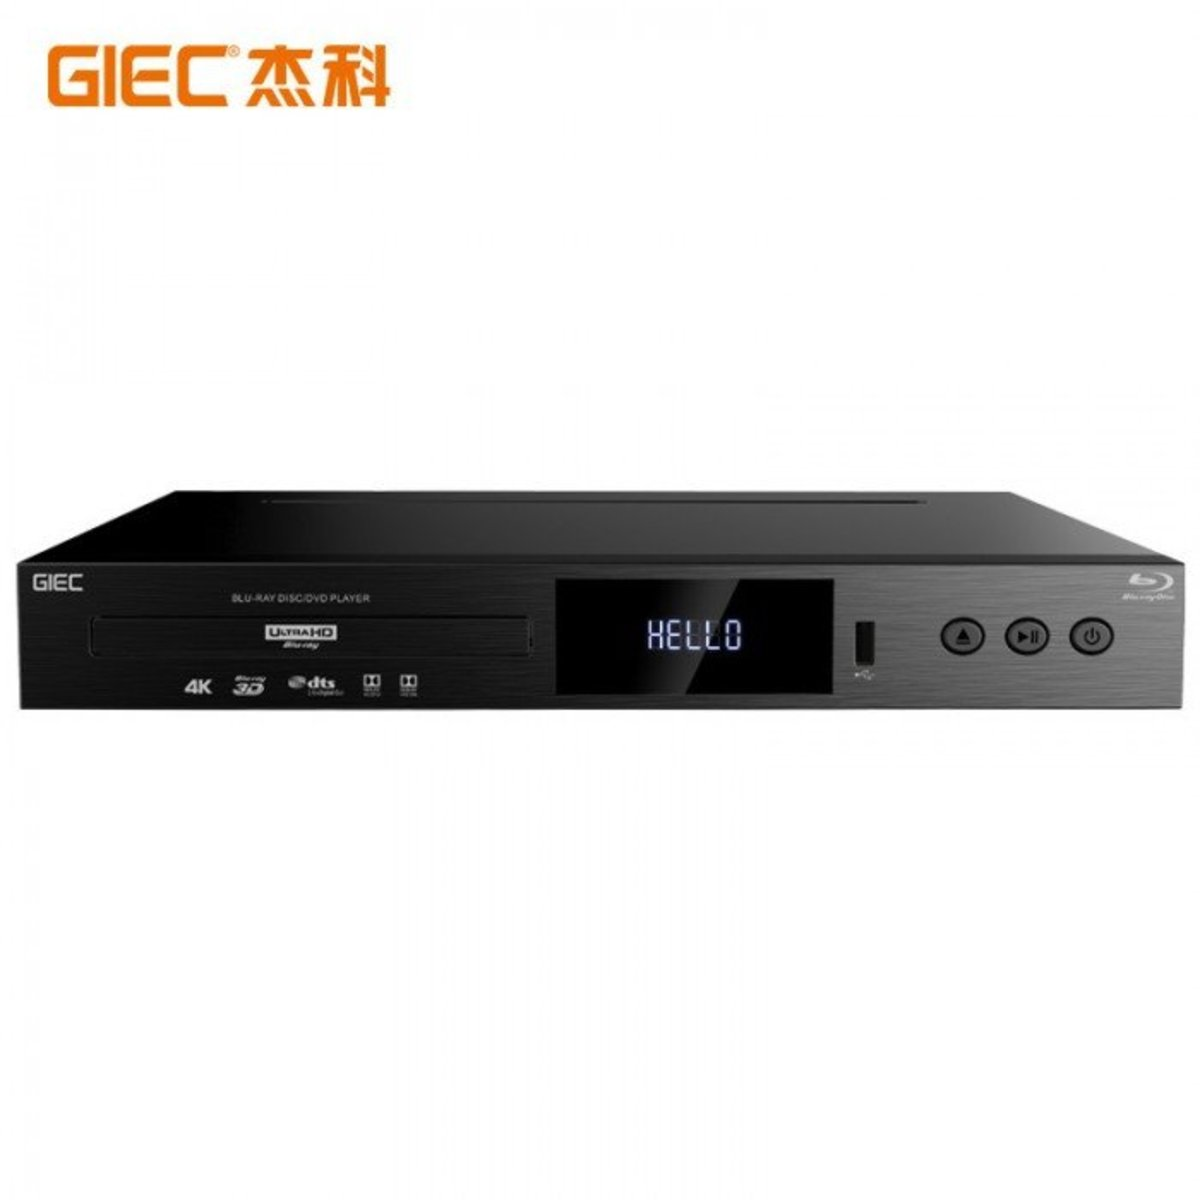 BDP-G5300 true 4K UHD Blu-ray player